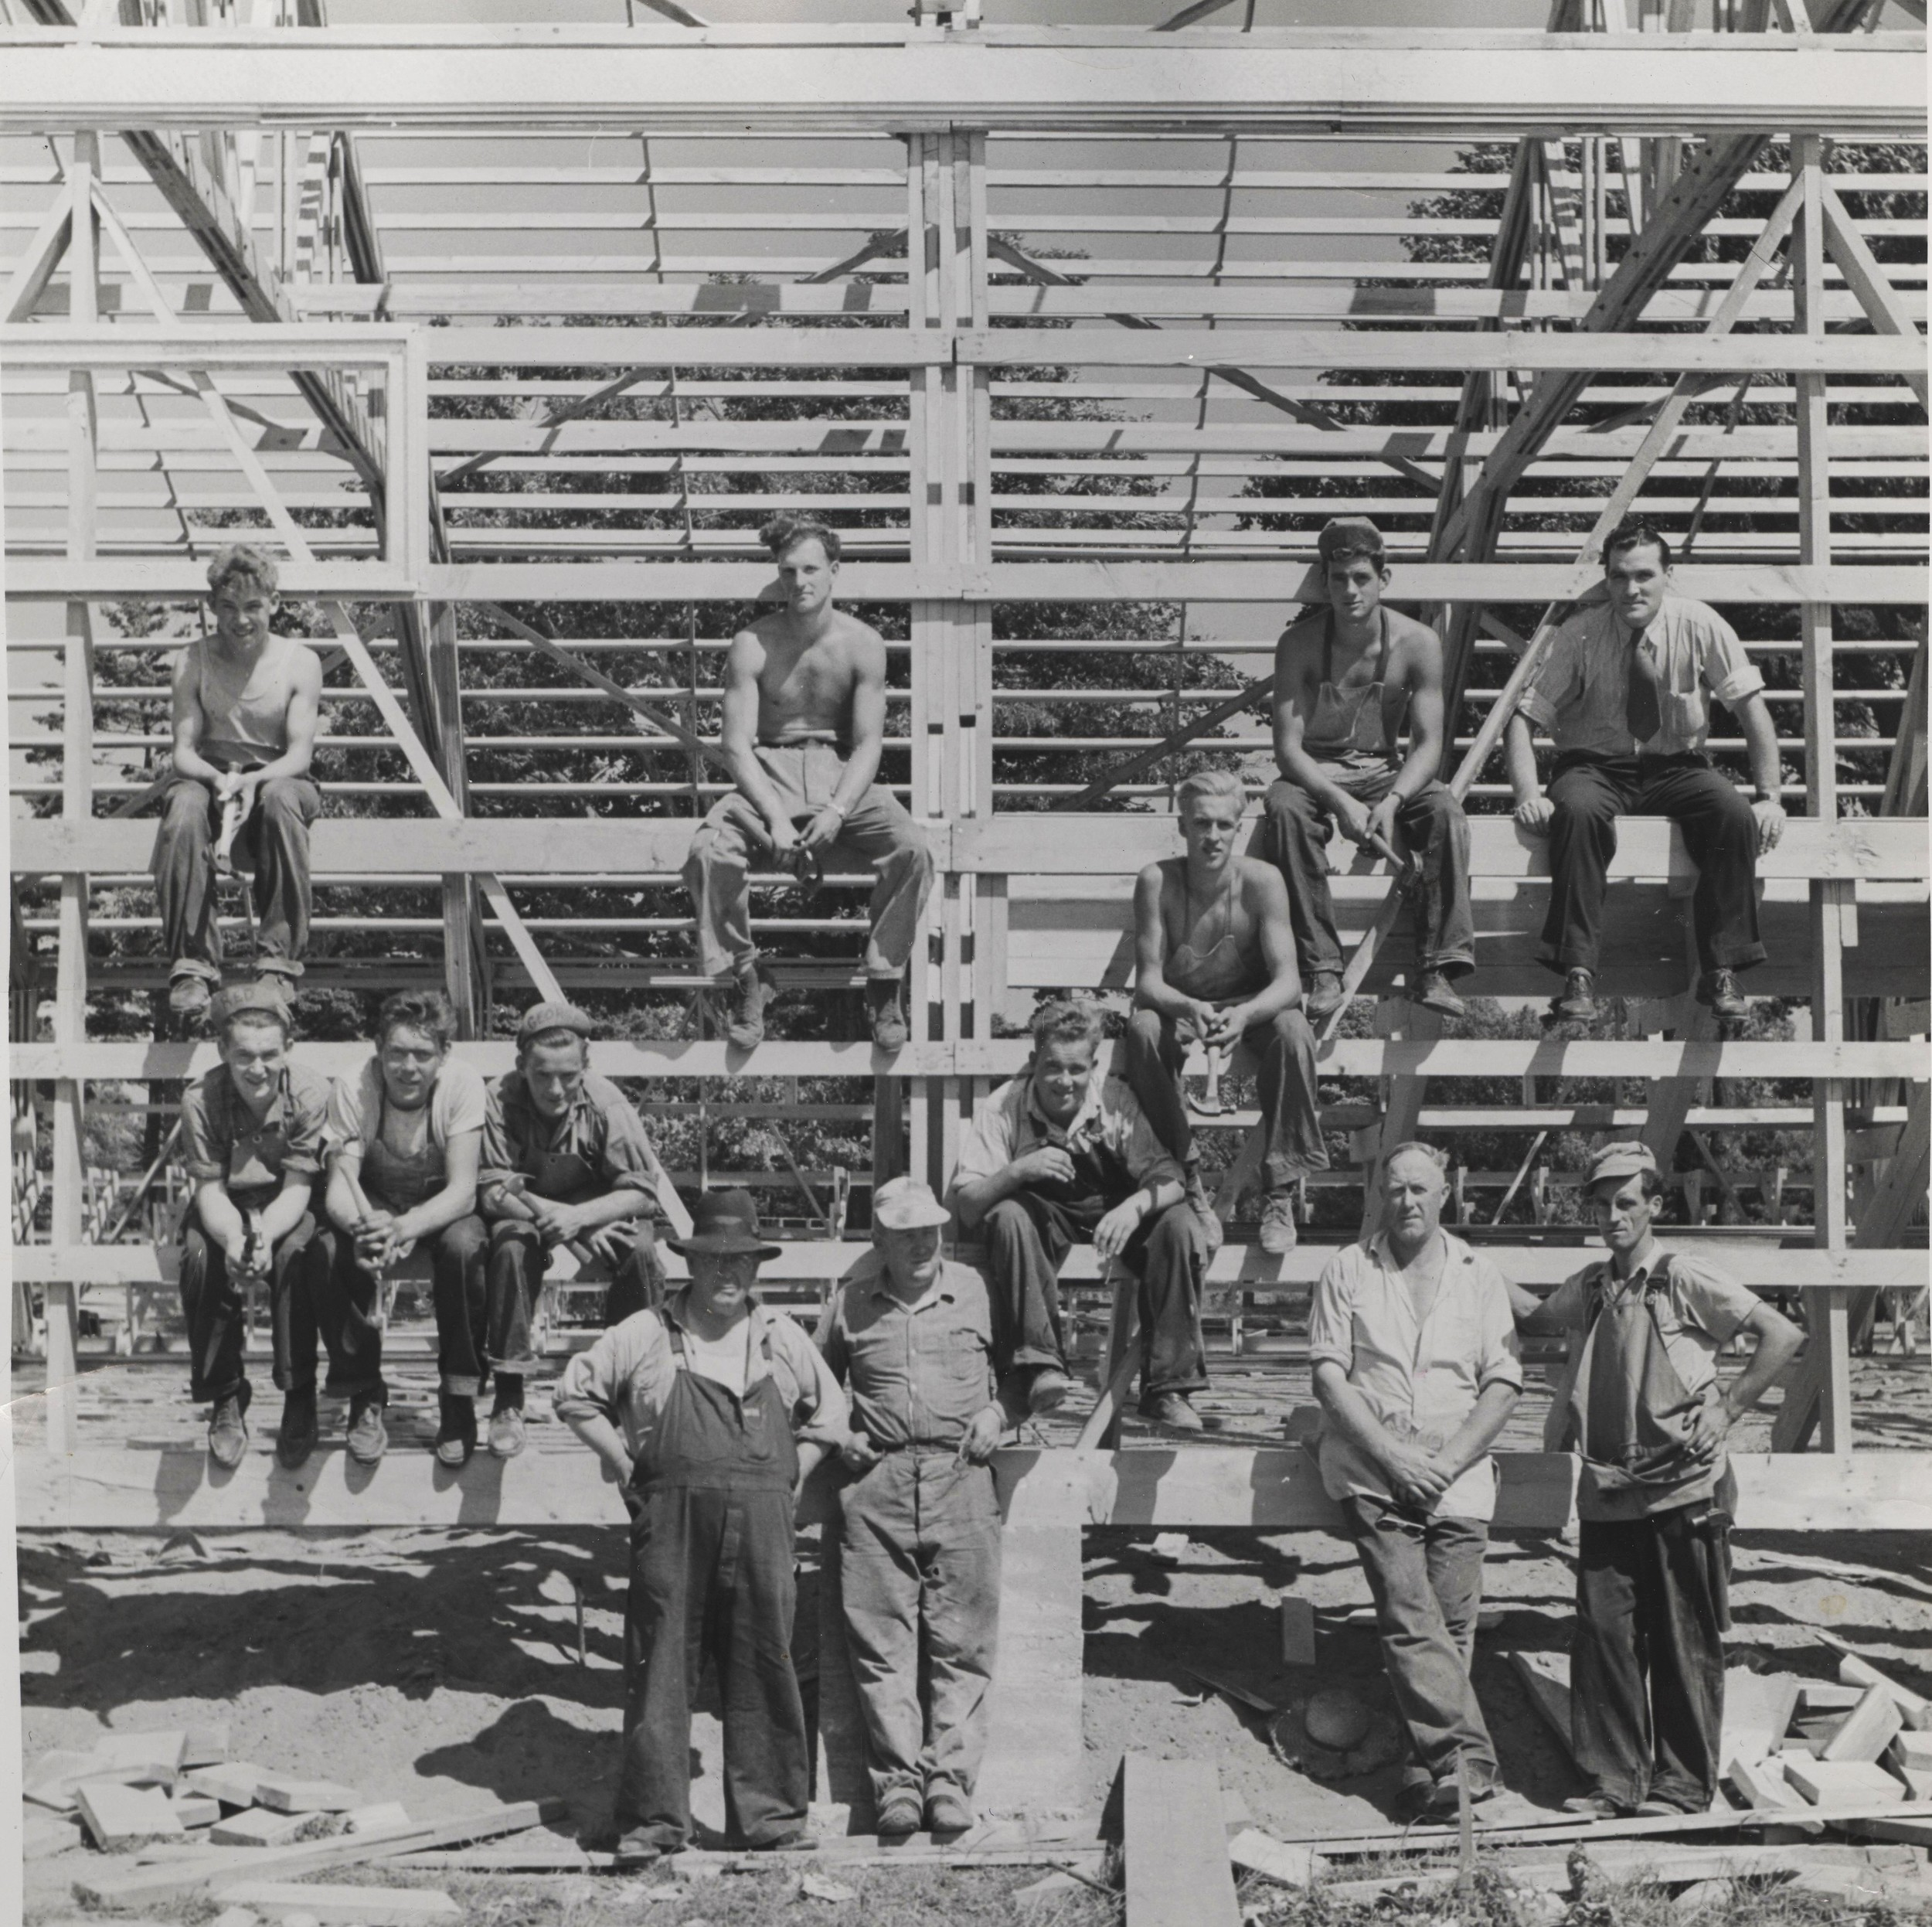 BUILDING THE FIRST ARENA 1948   Top l - r - Robert maynard (contractor's son, ray black, ed waddle, bill shannon,  SECOND ROW : DOUG WHAN,  THIRD ROW L-R:  aLLAN MAYNARD (CONTRACTOR'S SON), mURRAY MCKINNON, GEORGE MAYNARD (CONTRACTOR'S SON), ALFRED MAYNARD (CONTRACTOR'S SON)  FRONT ROW L-R - gEORGE hENRY mAYNARD (CONTRACTOR), MARK MAYNARD (CONTRACTOR'S SON), iRVIN mCCOY (FATHER OF mARJORIE MCFAUL) JIM CRAWFROD (FATHER OF JANET O'NEILL)